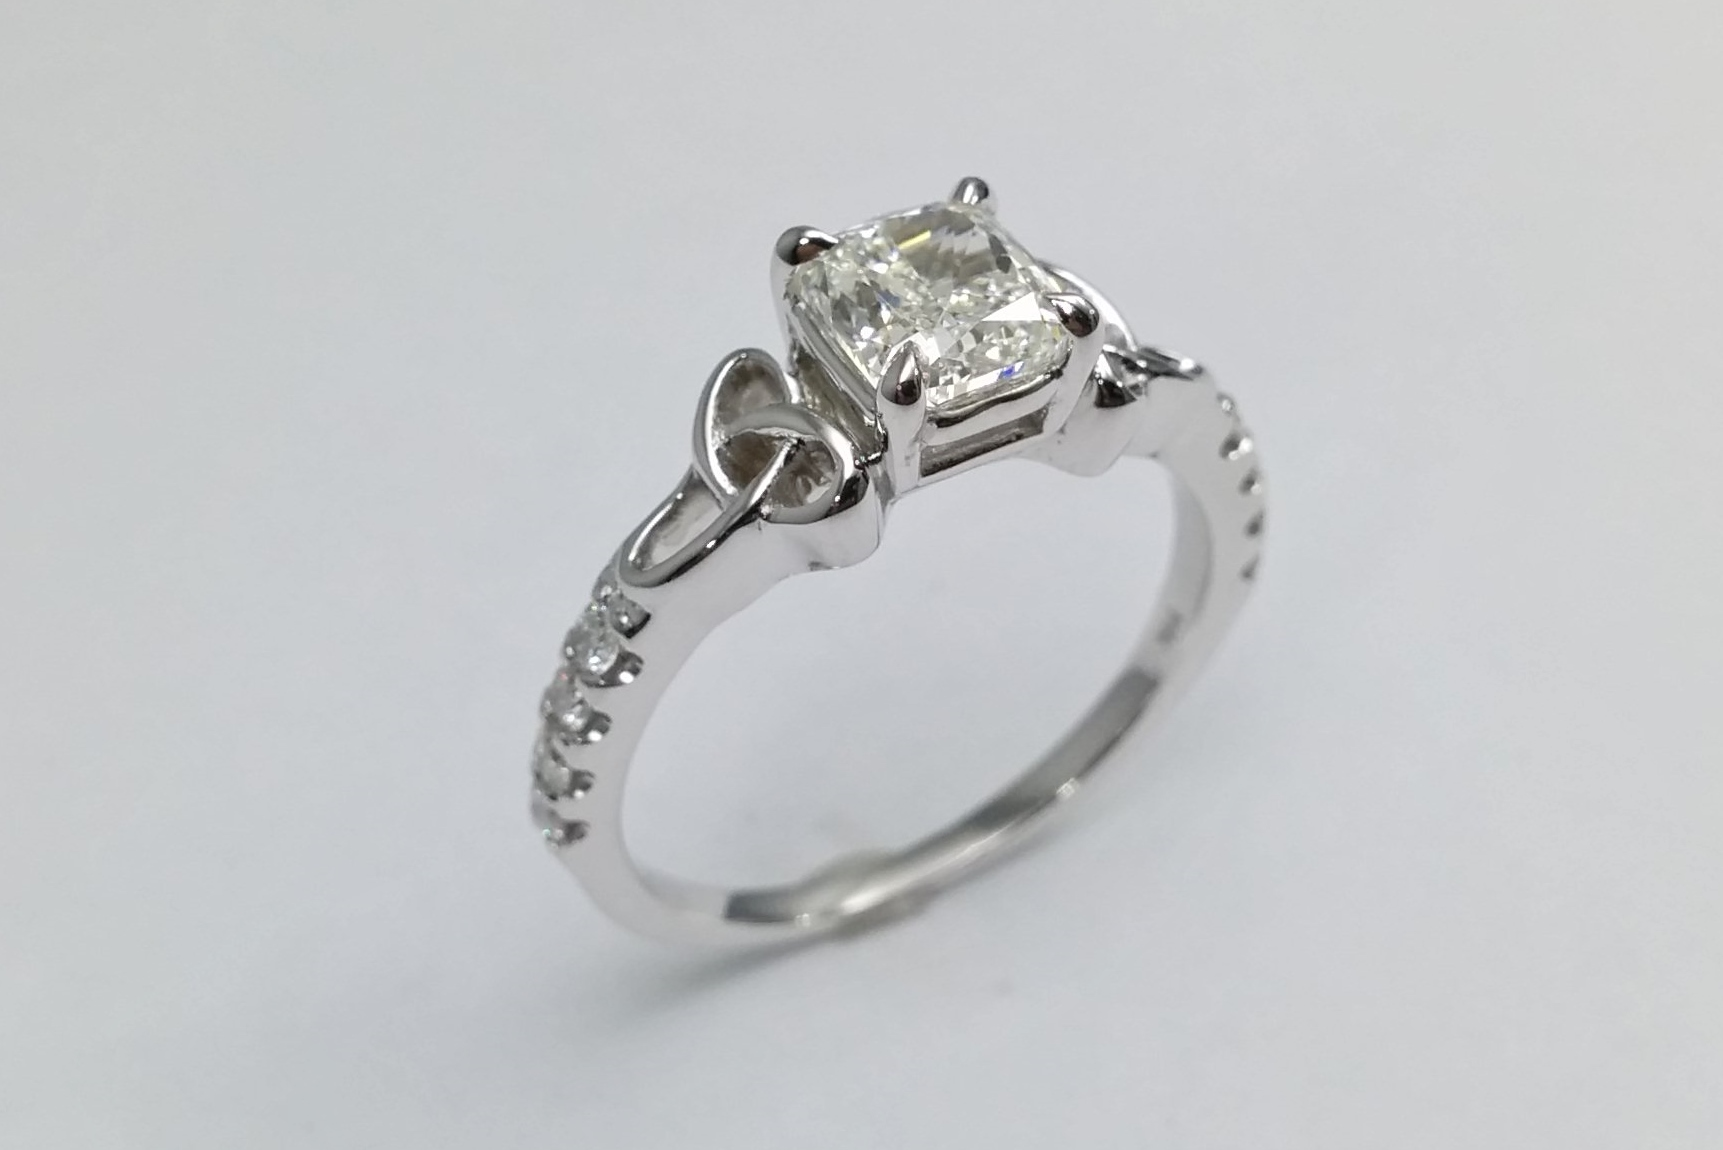 diamond jewelry normal in metallic tone kors silver product knot pave ring gallery michael lyst pav